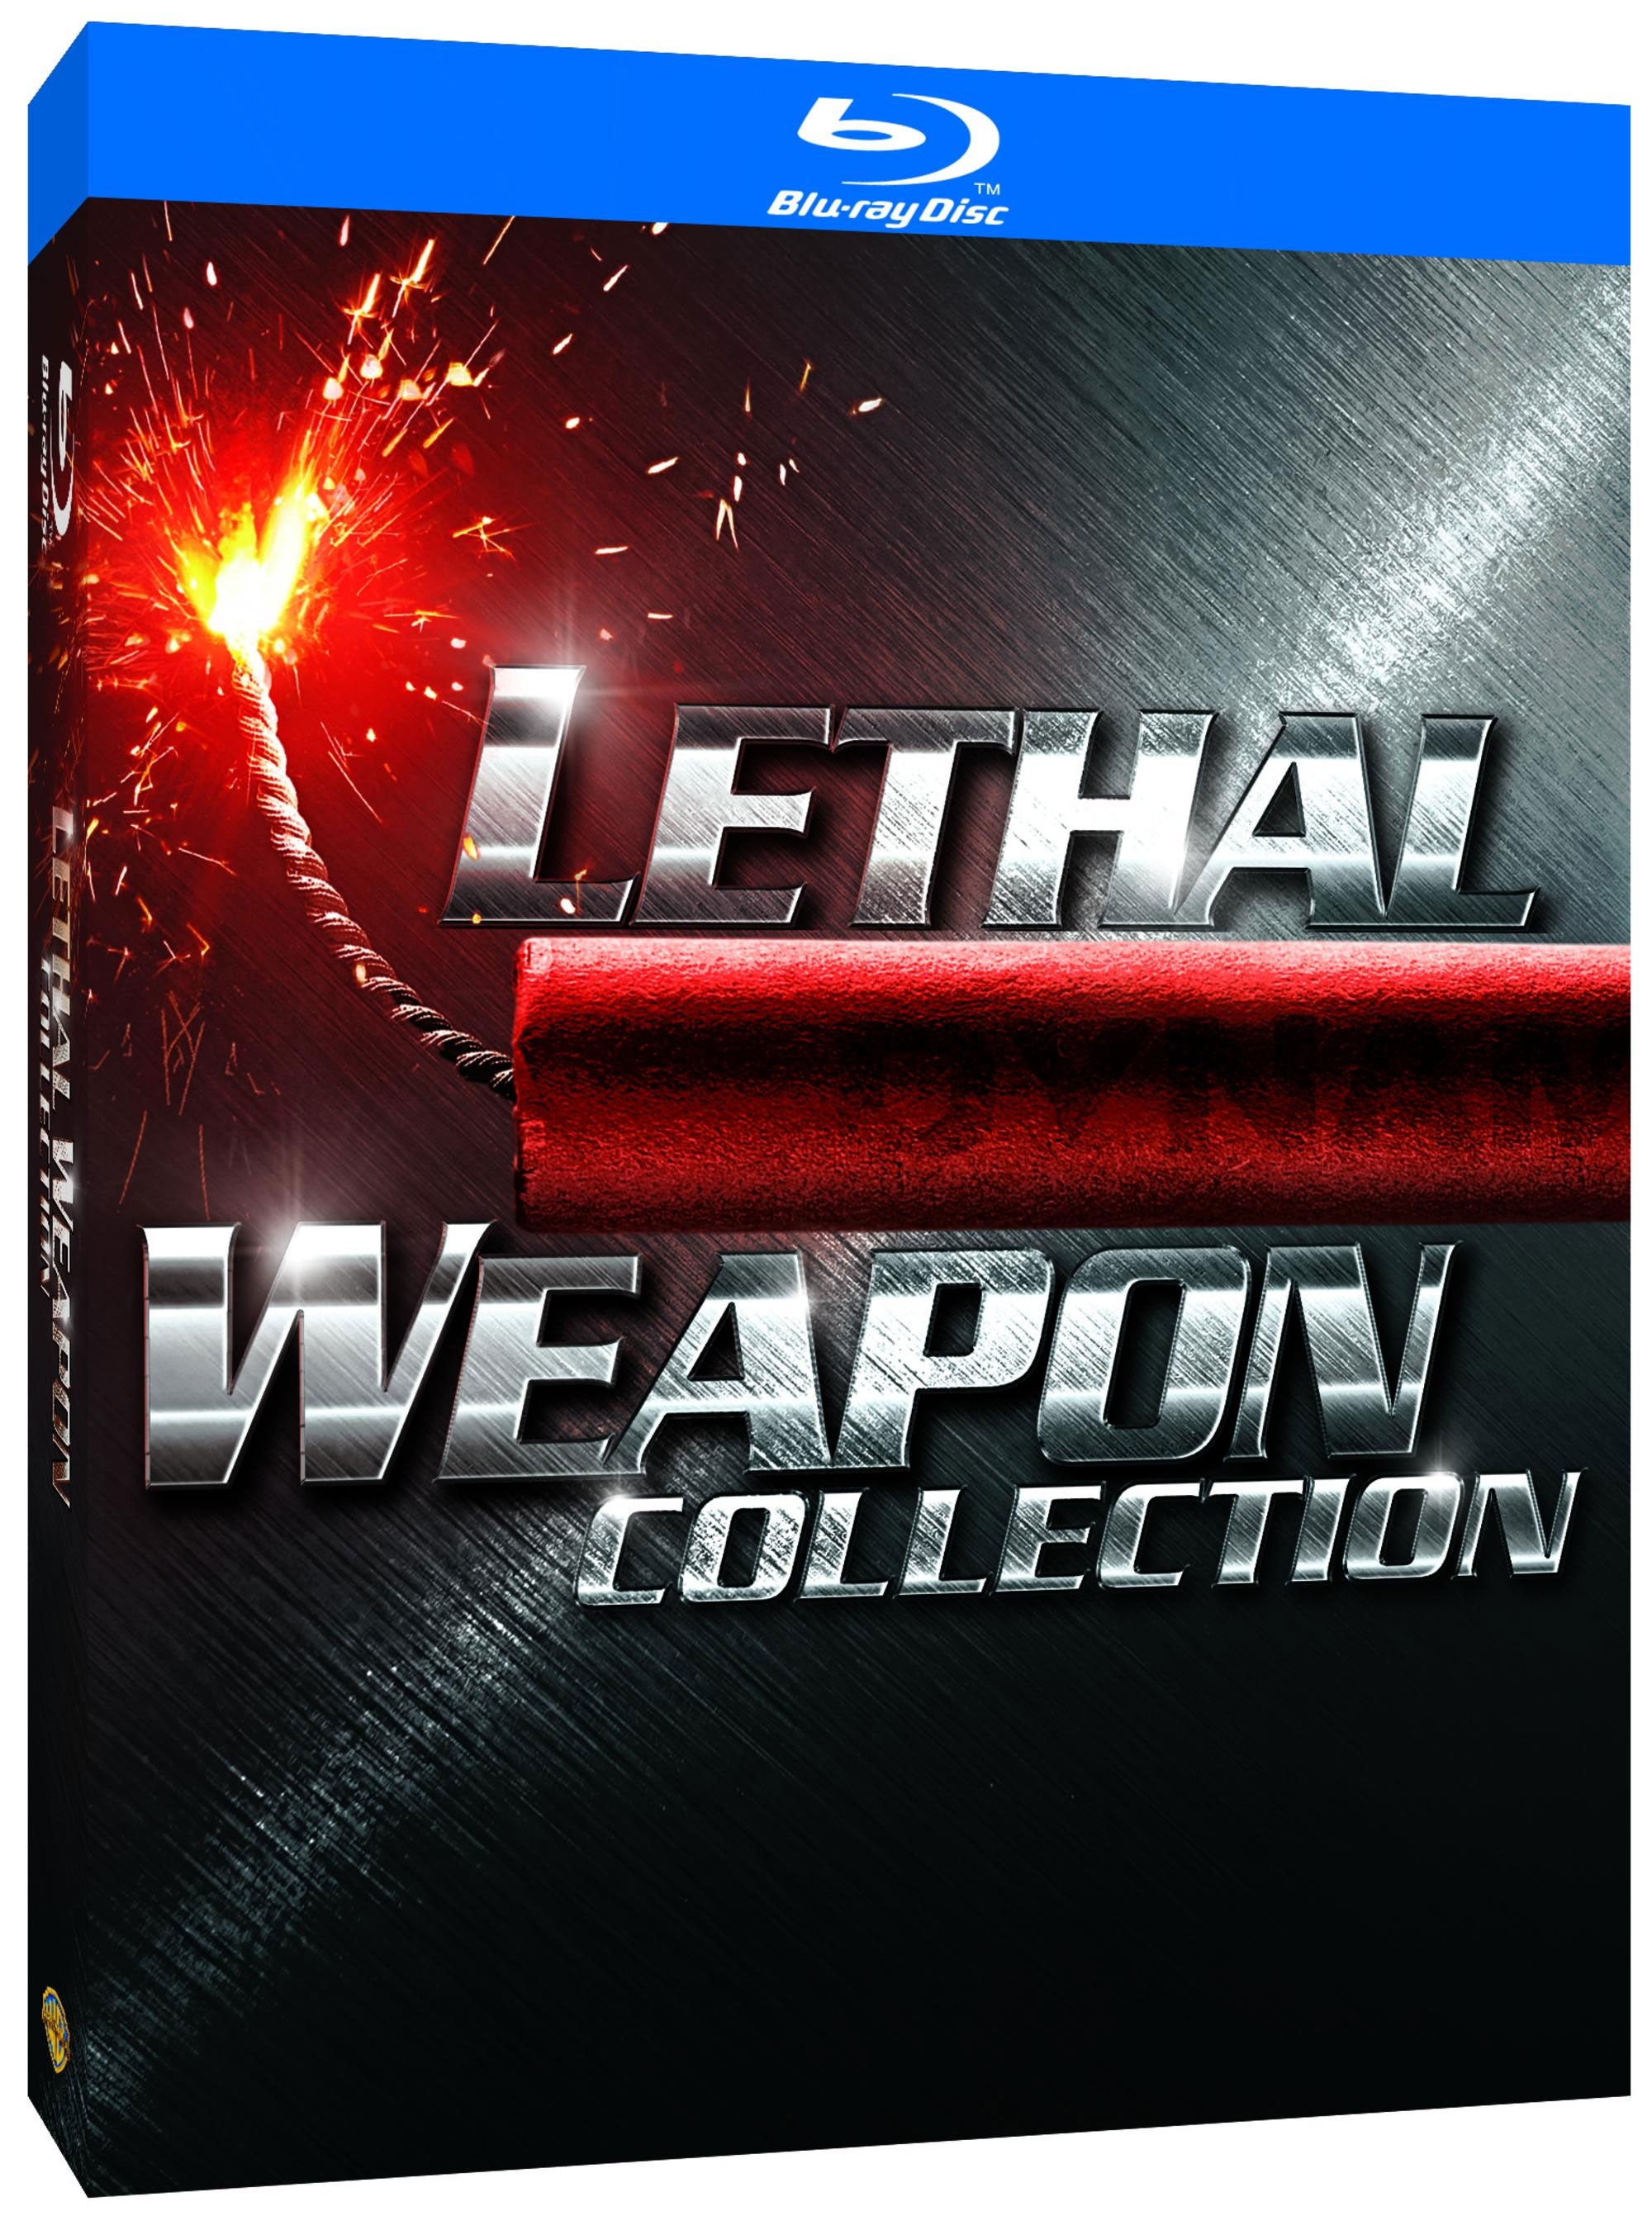 Lethal Weapon Collection (Blu-ray Disc)